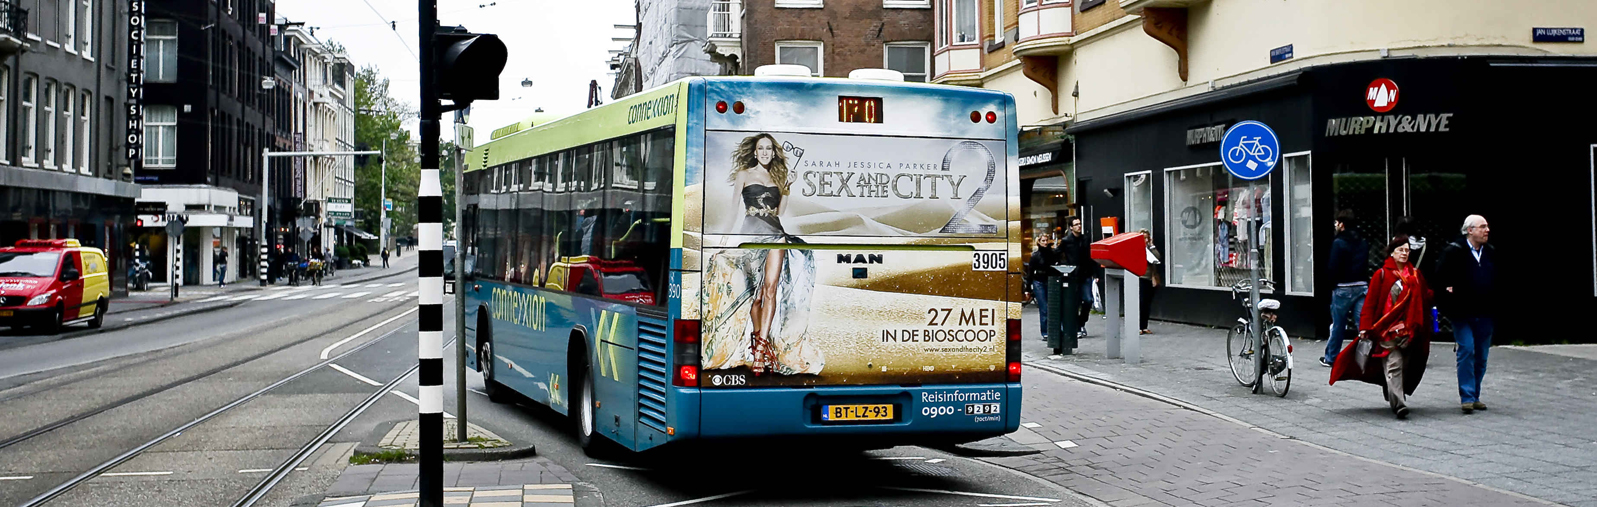 JCDecaux regelt vervoersreclame in Amsterdam